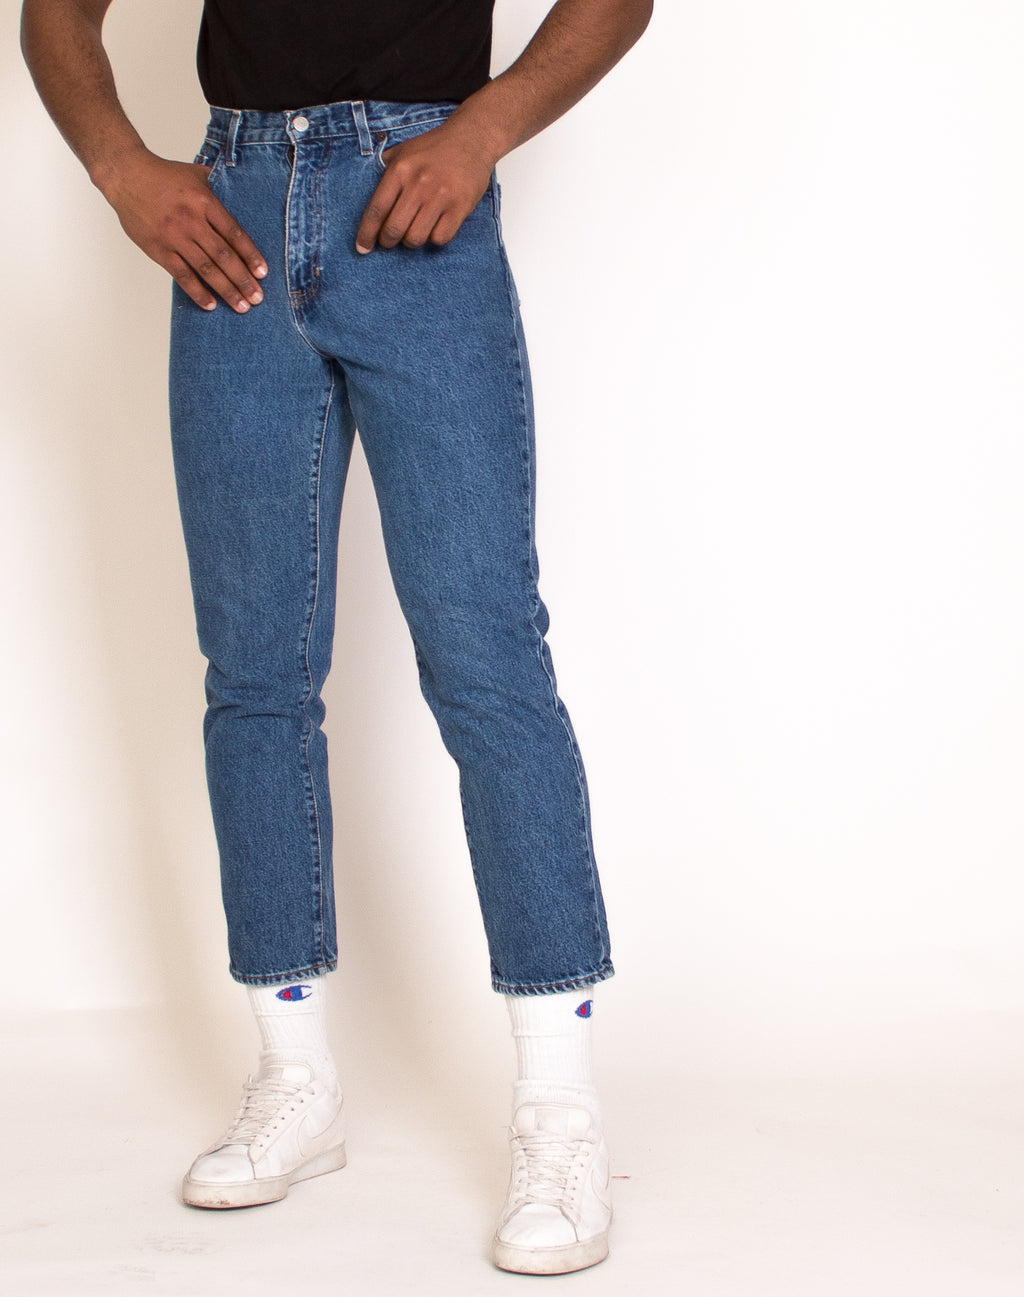 GAP DENIM BLUE JEANS